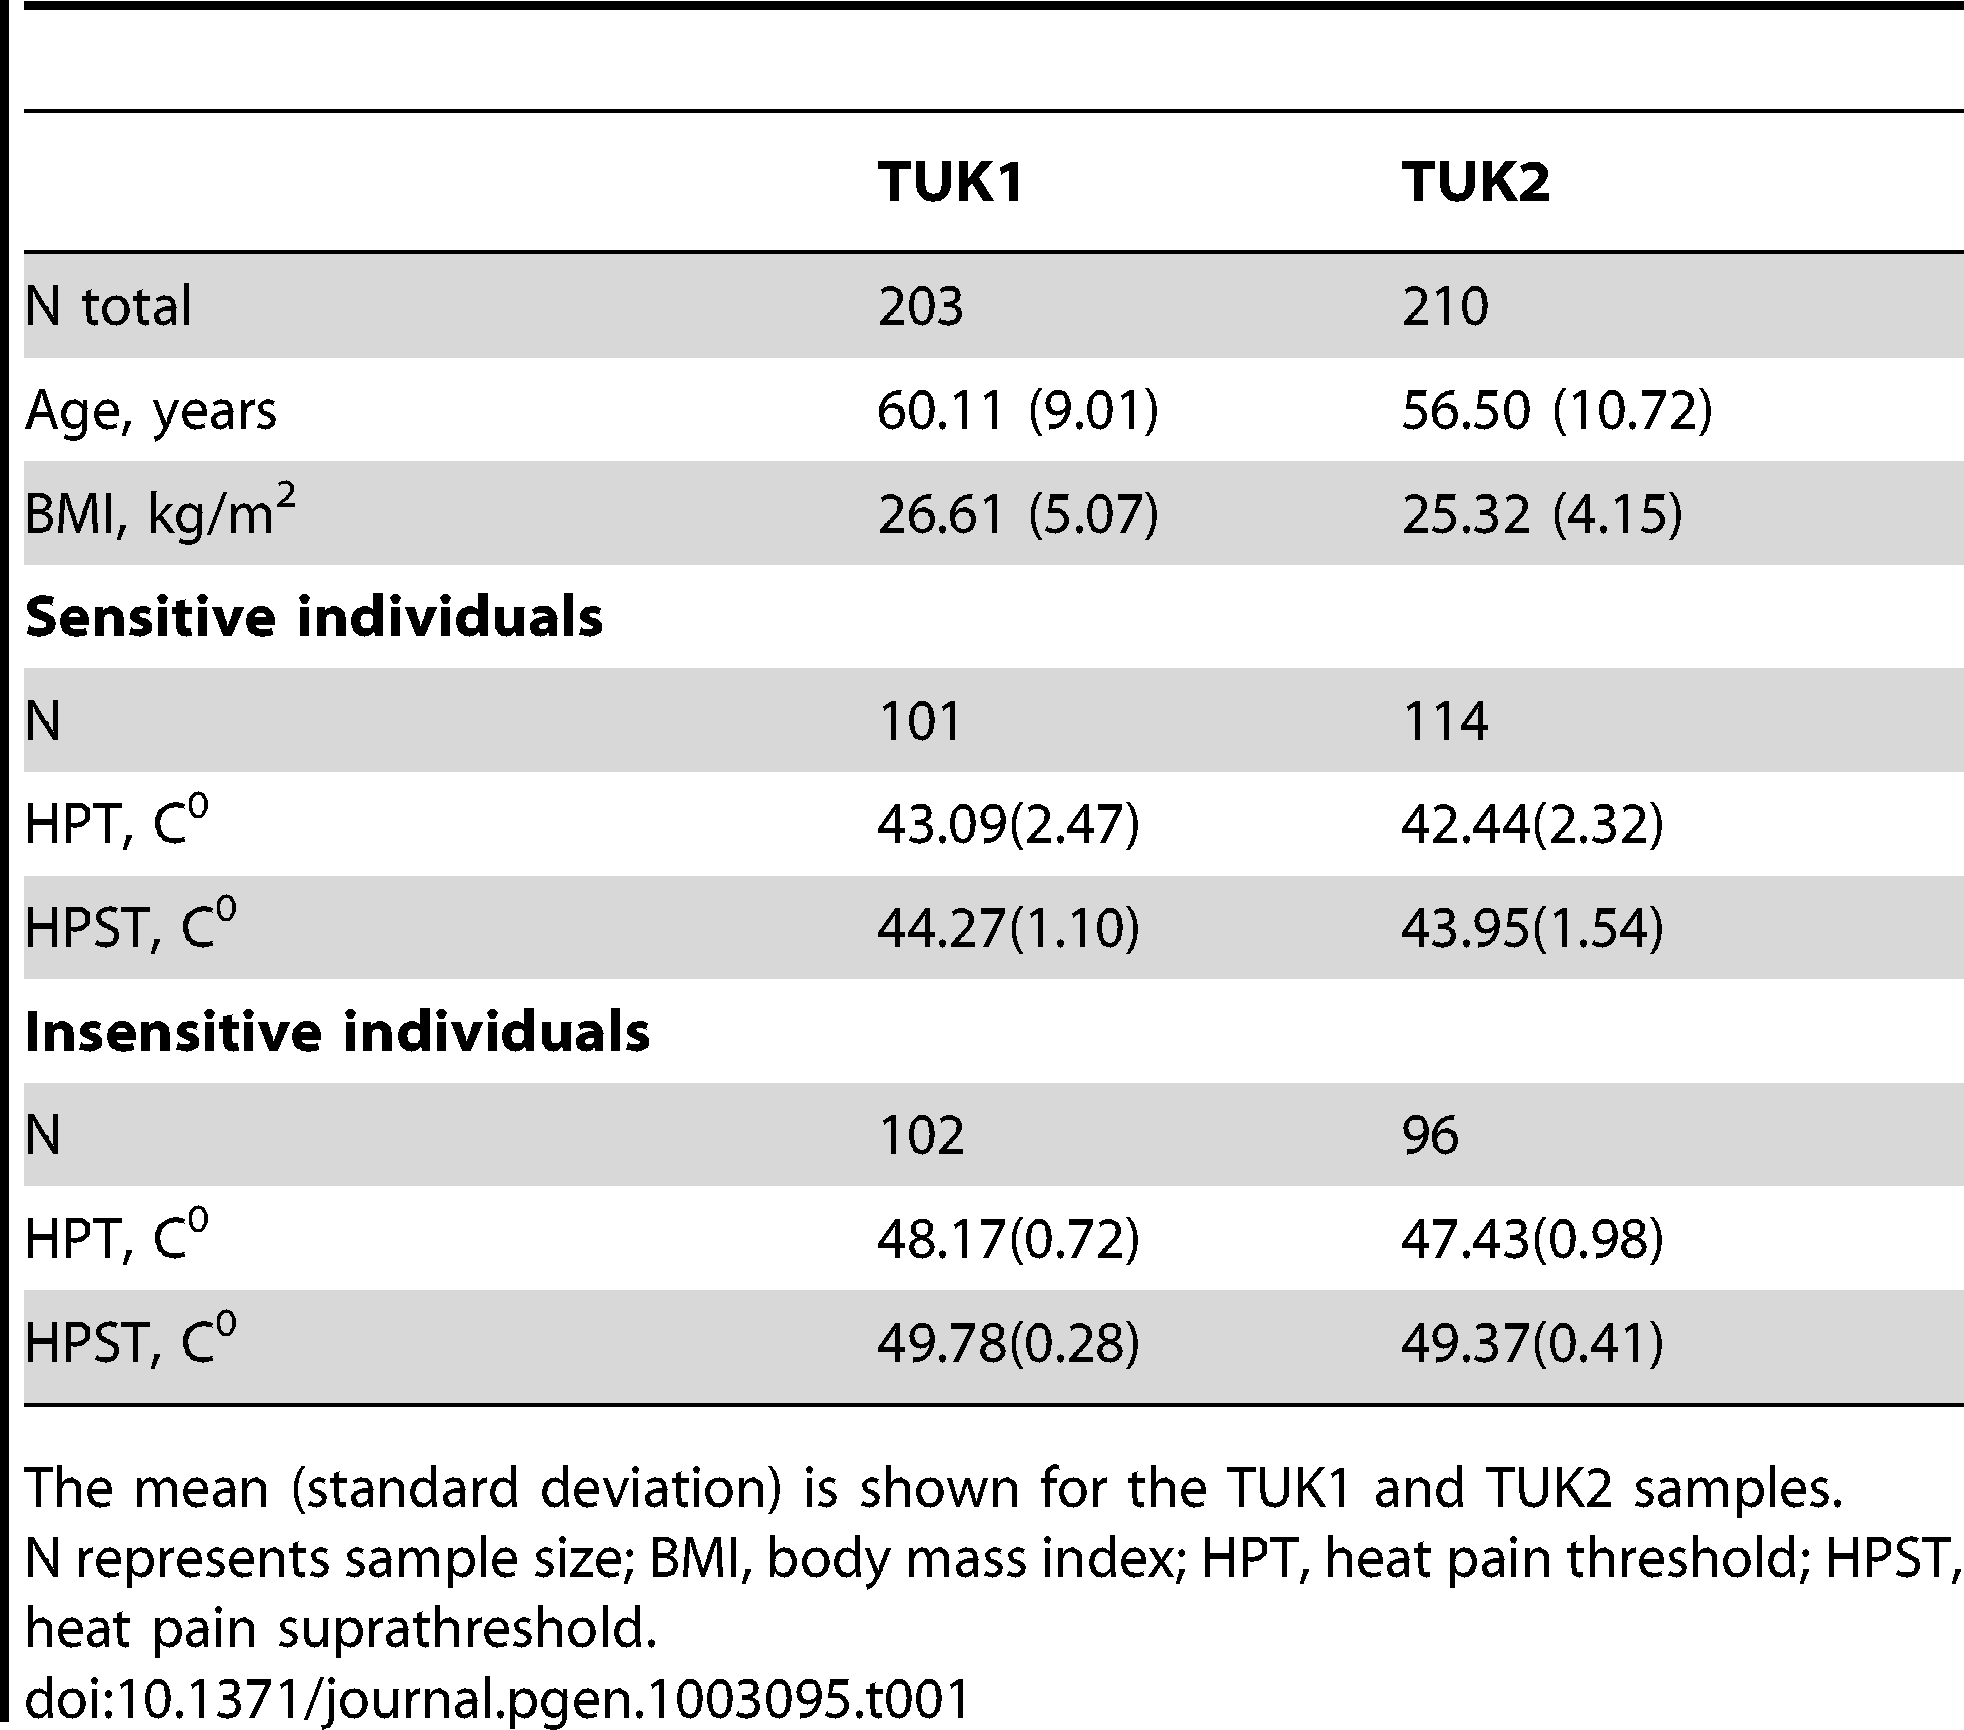 Characteristics of the individuals in the TUK1 and TUK2 samples.